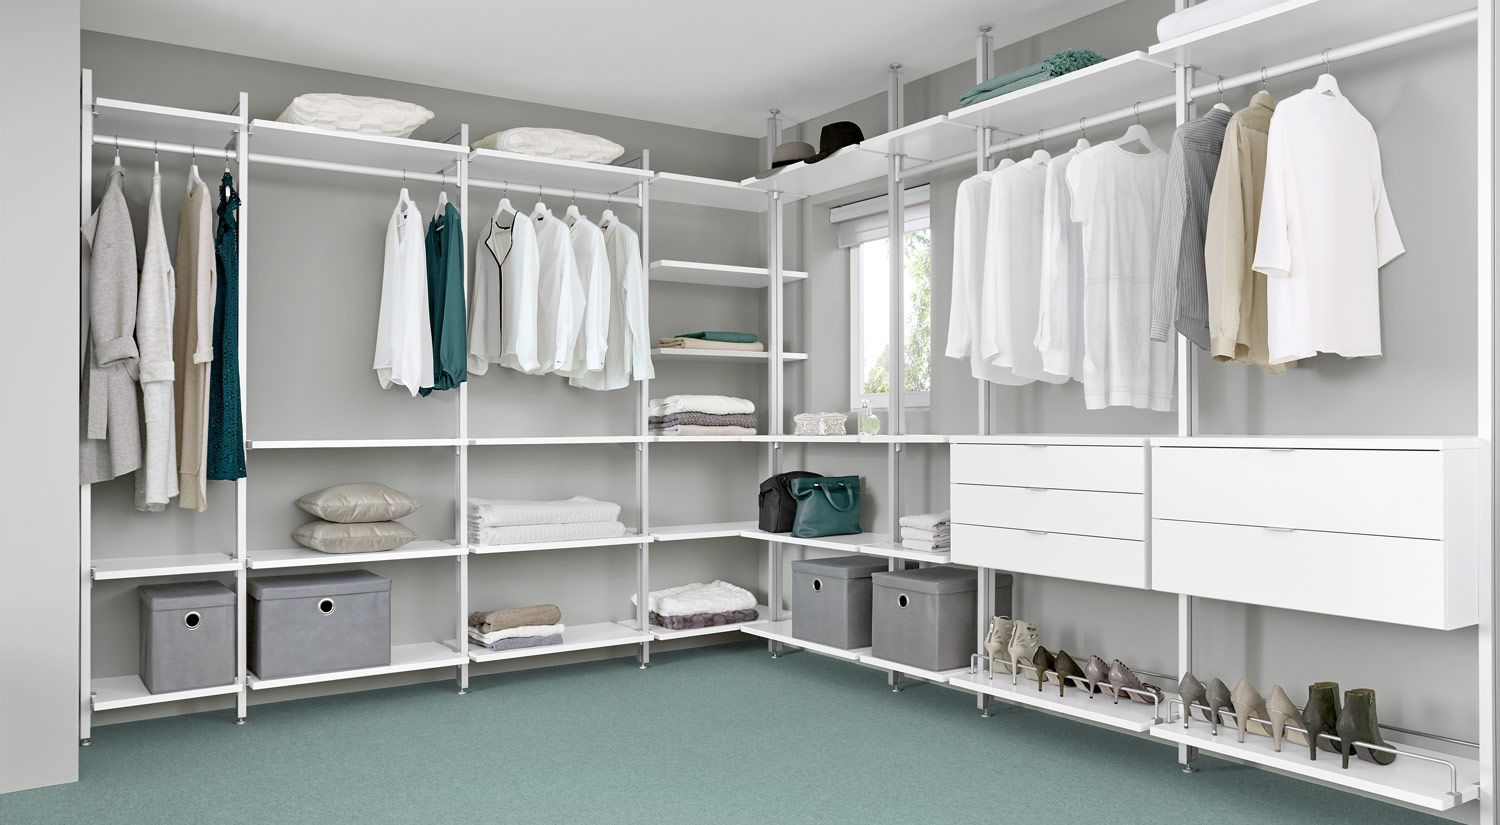 Begehbarer Kleiderschrank (Ecklösung) closet storage shelves and ...